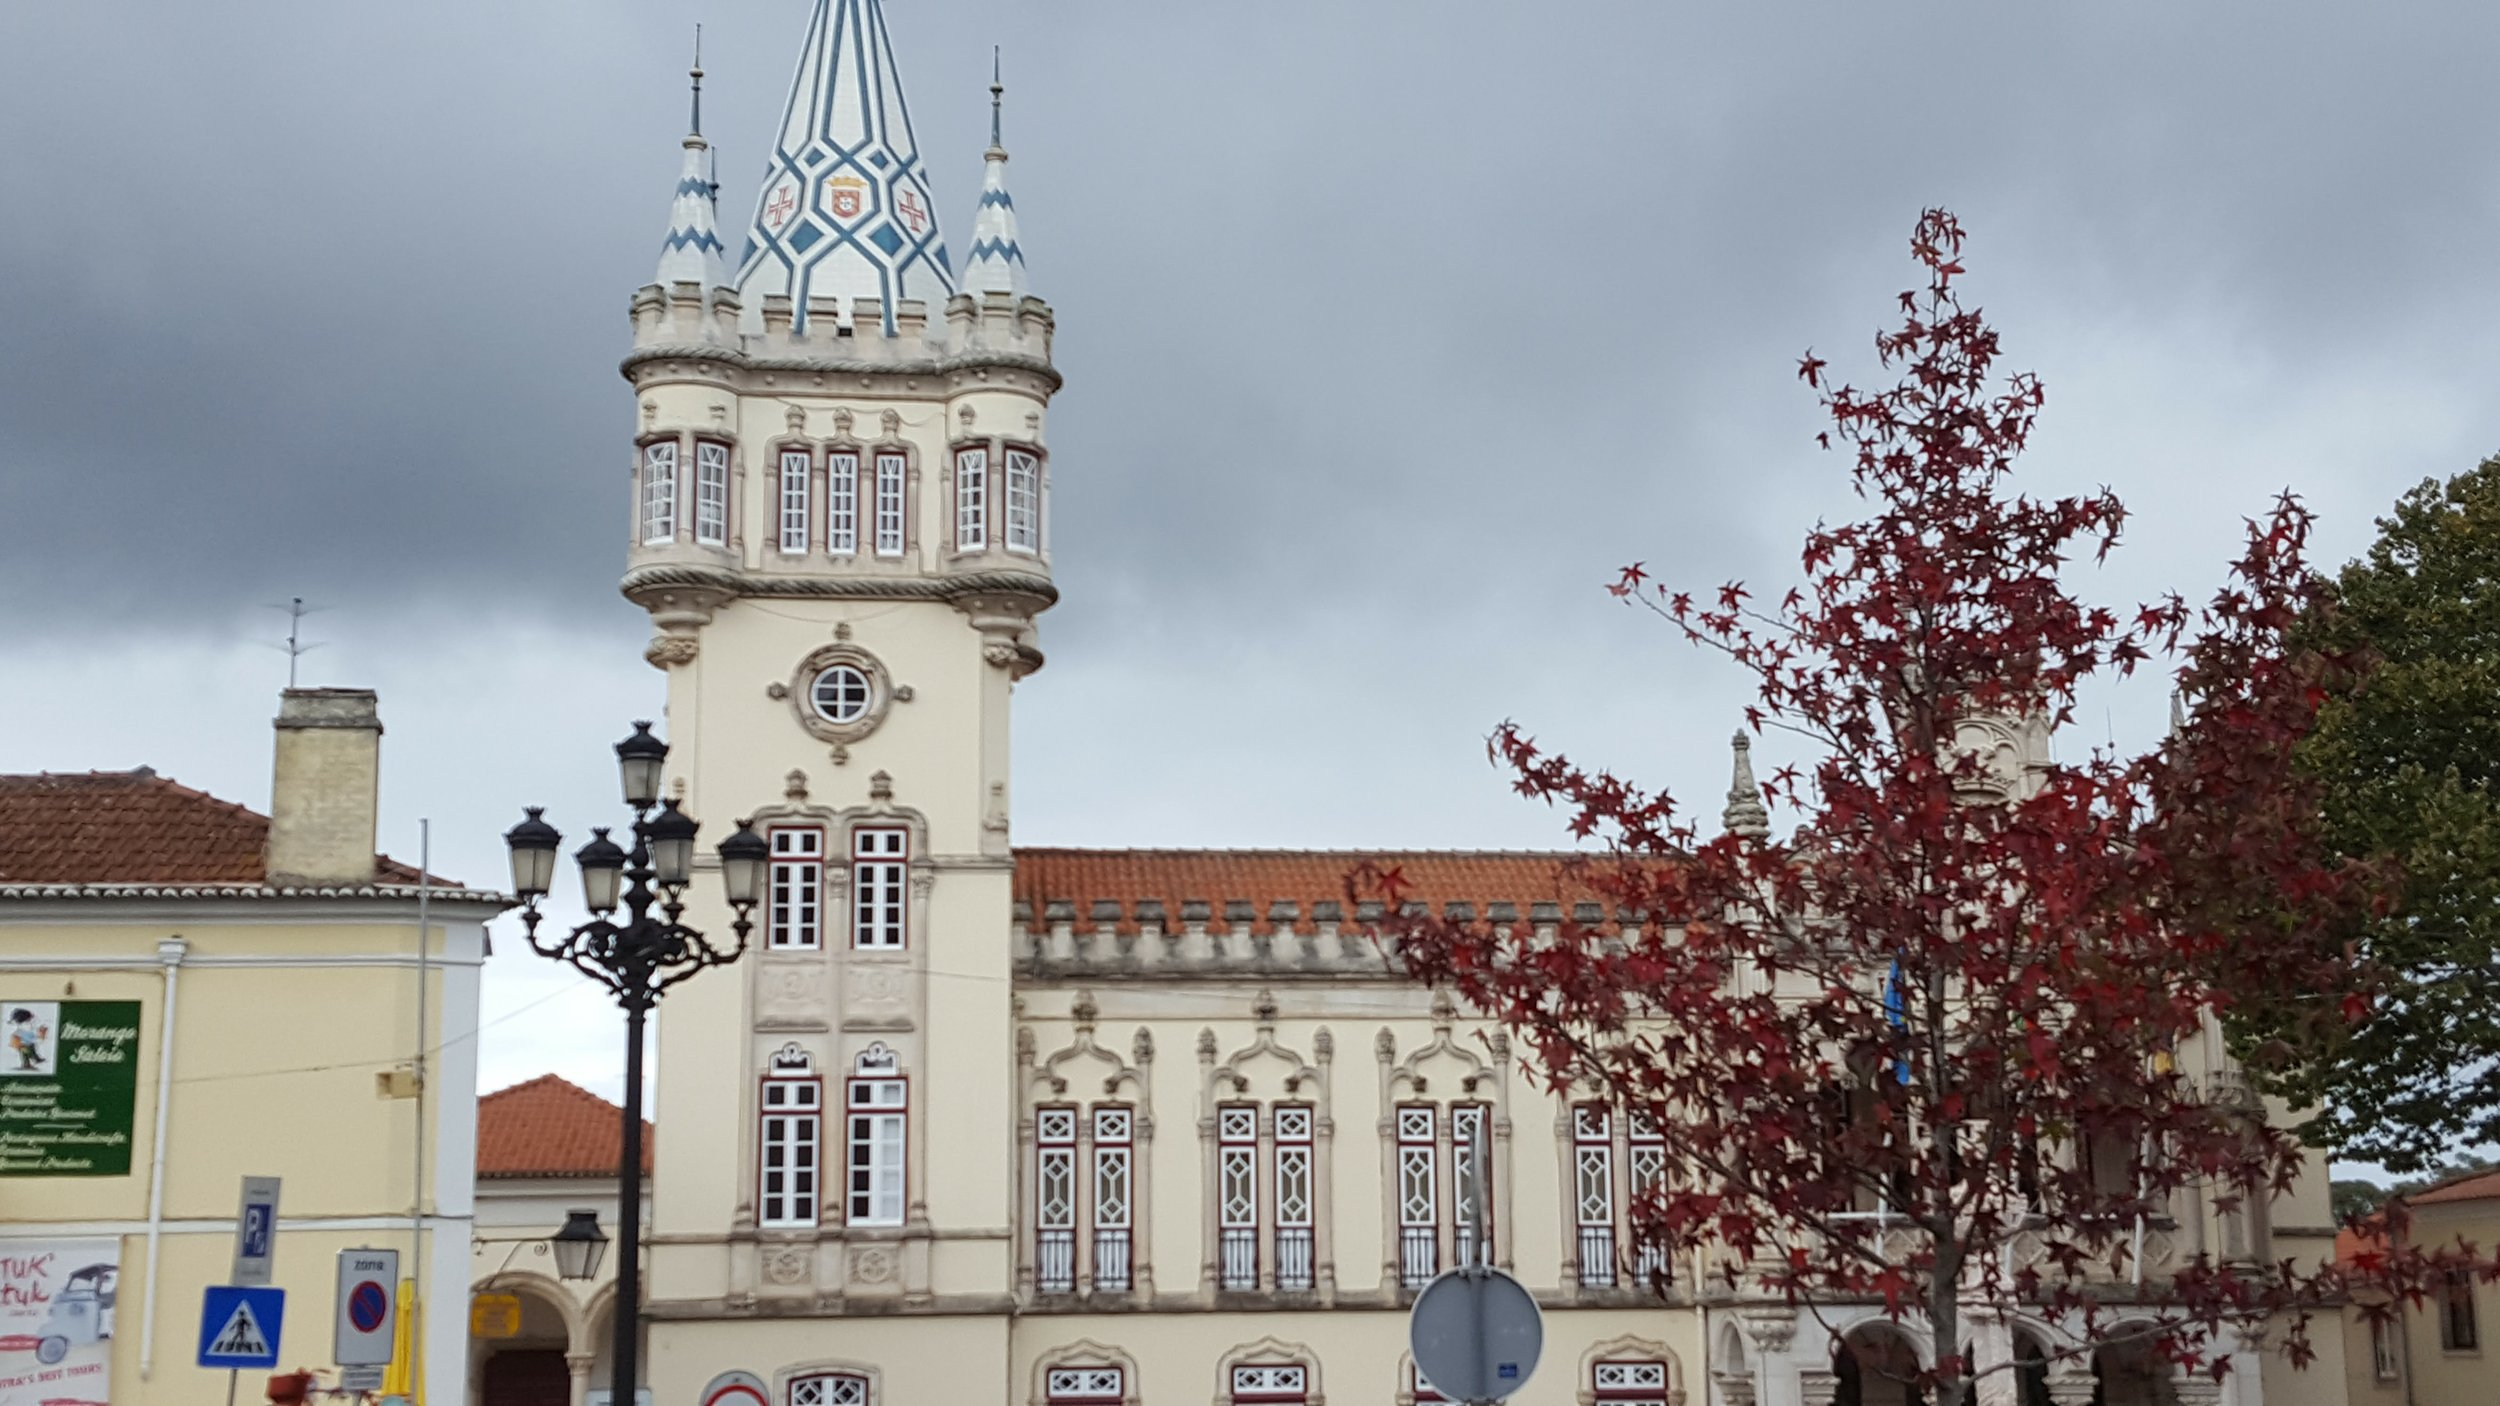 City Hall of Sintra